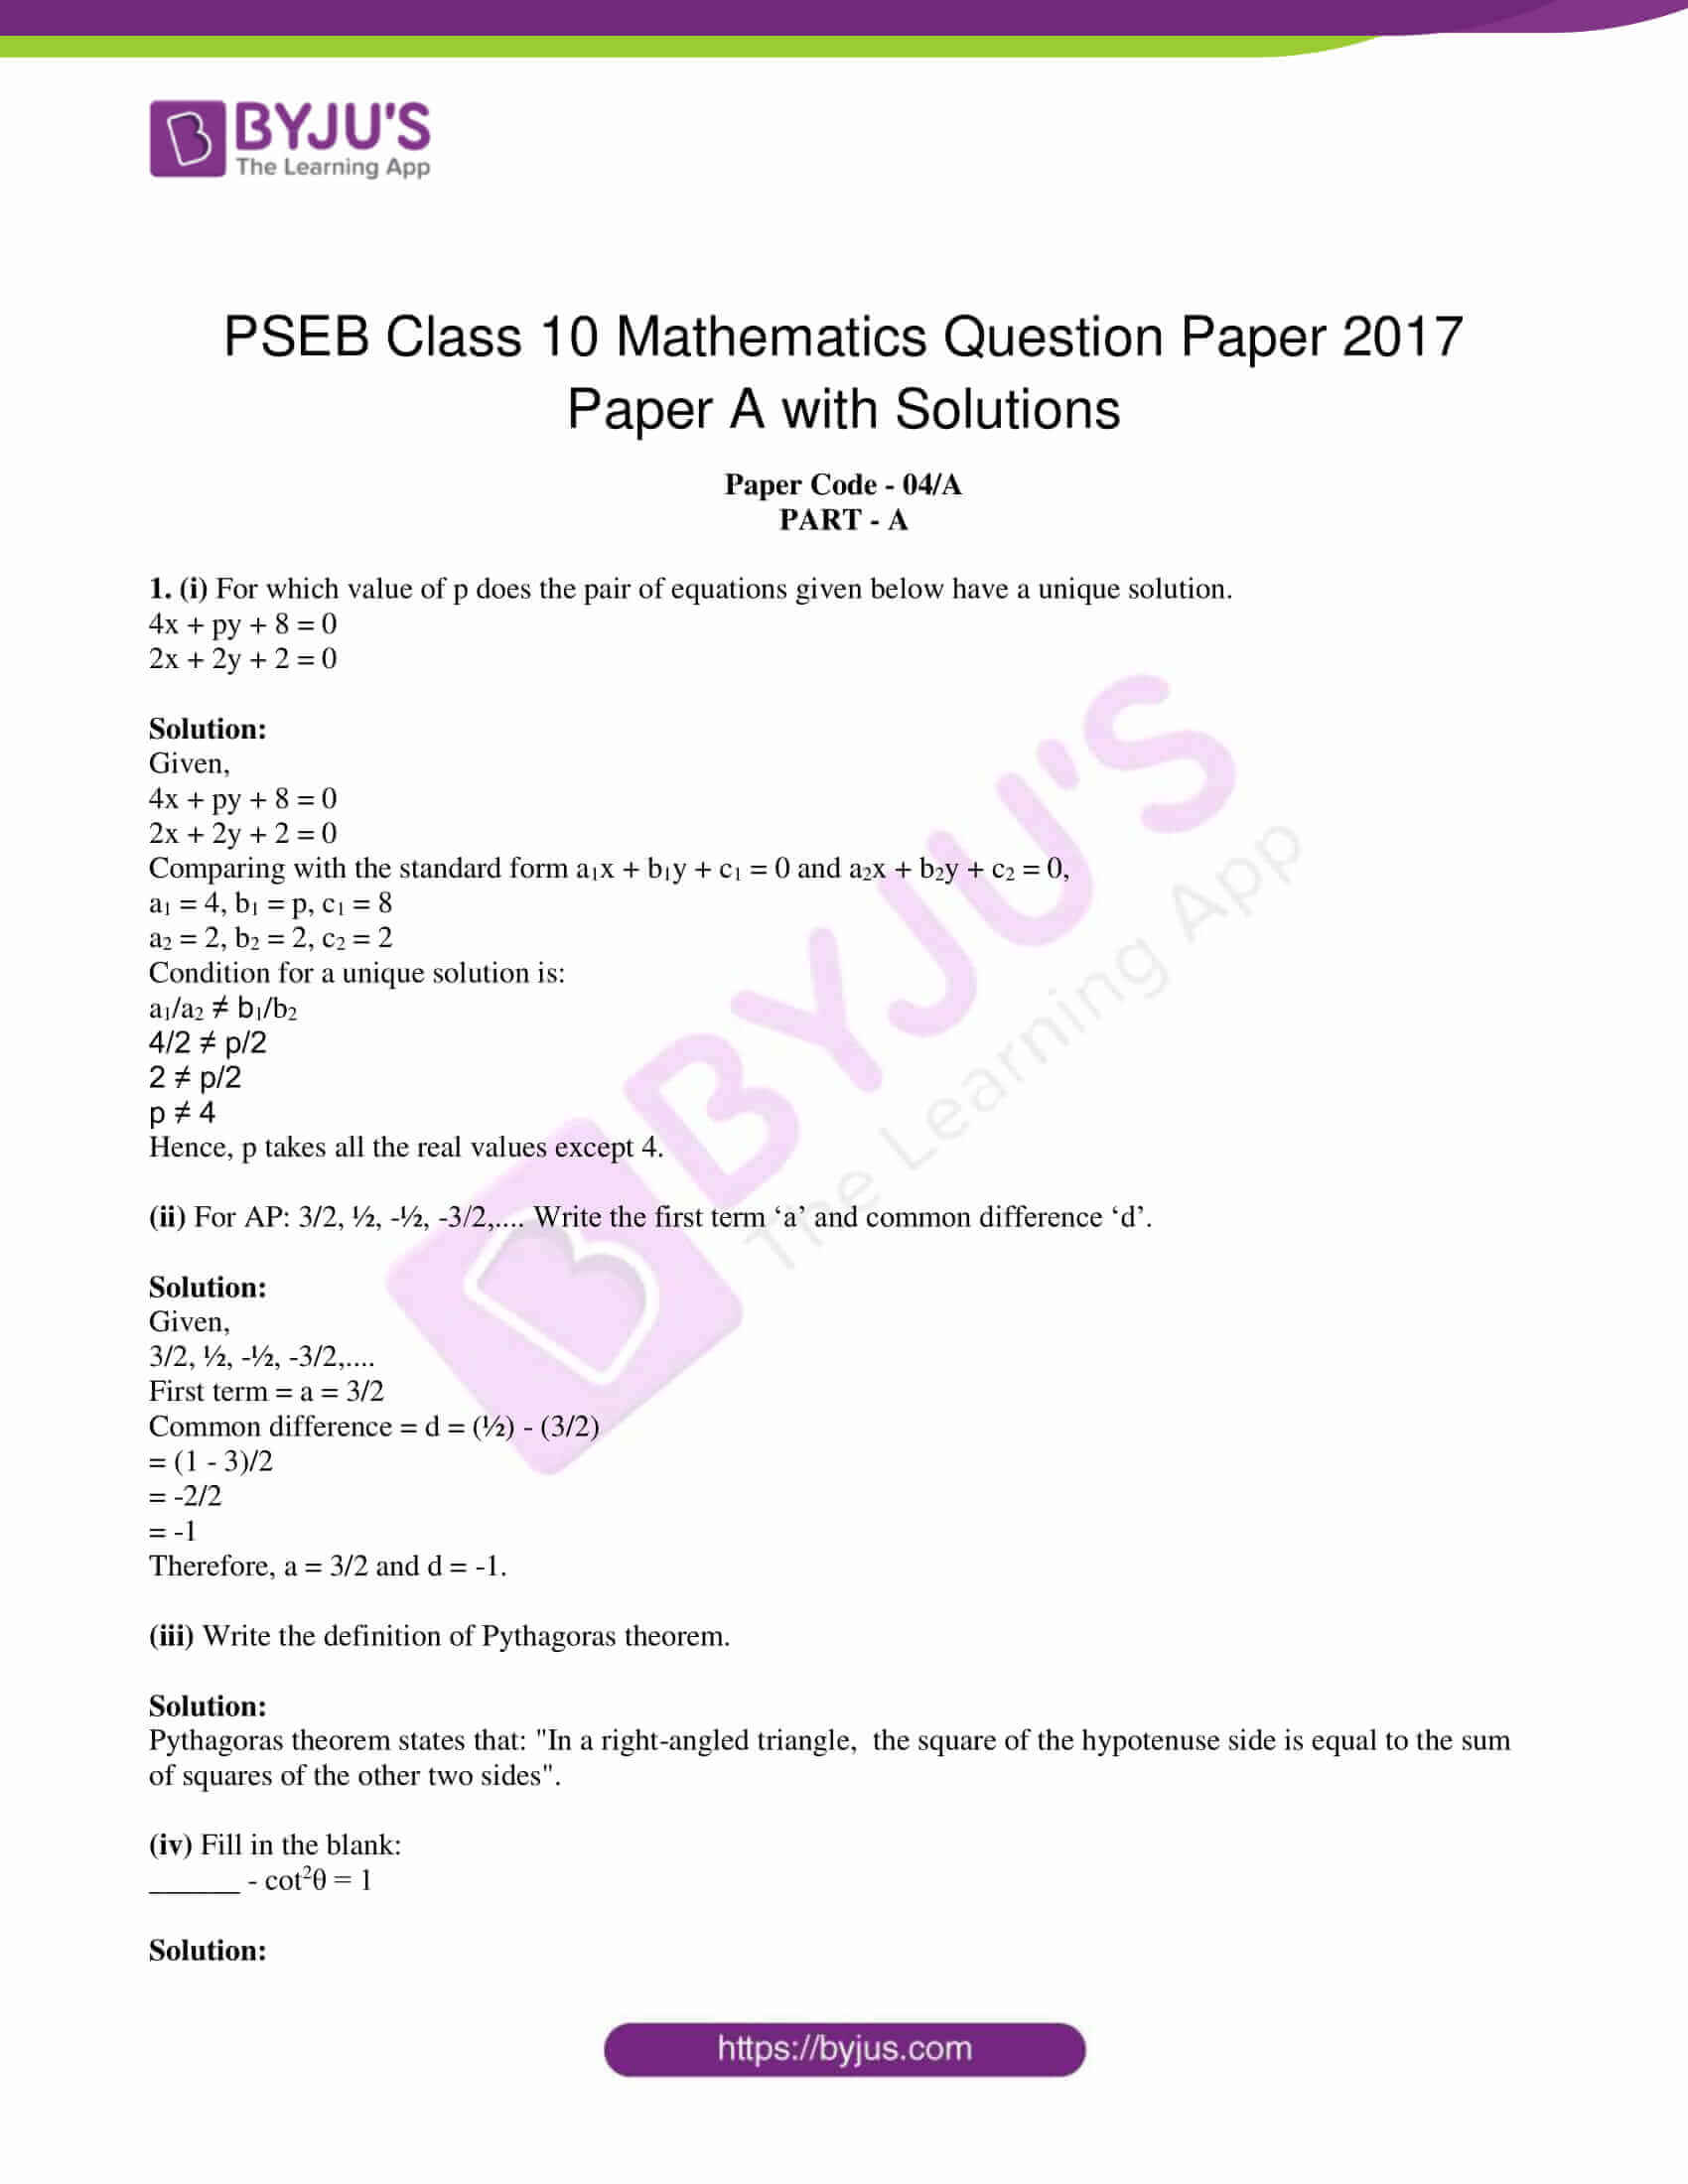 pseb class 10 mathematics question paper 2017 paper a with solutions 01